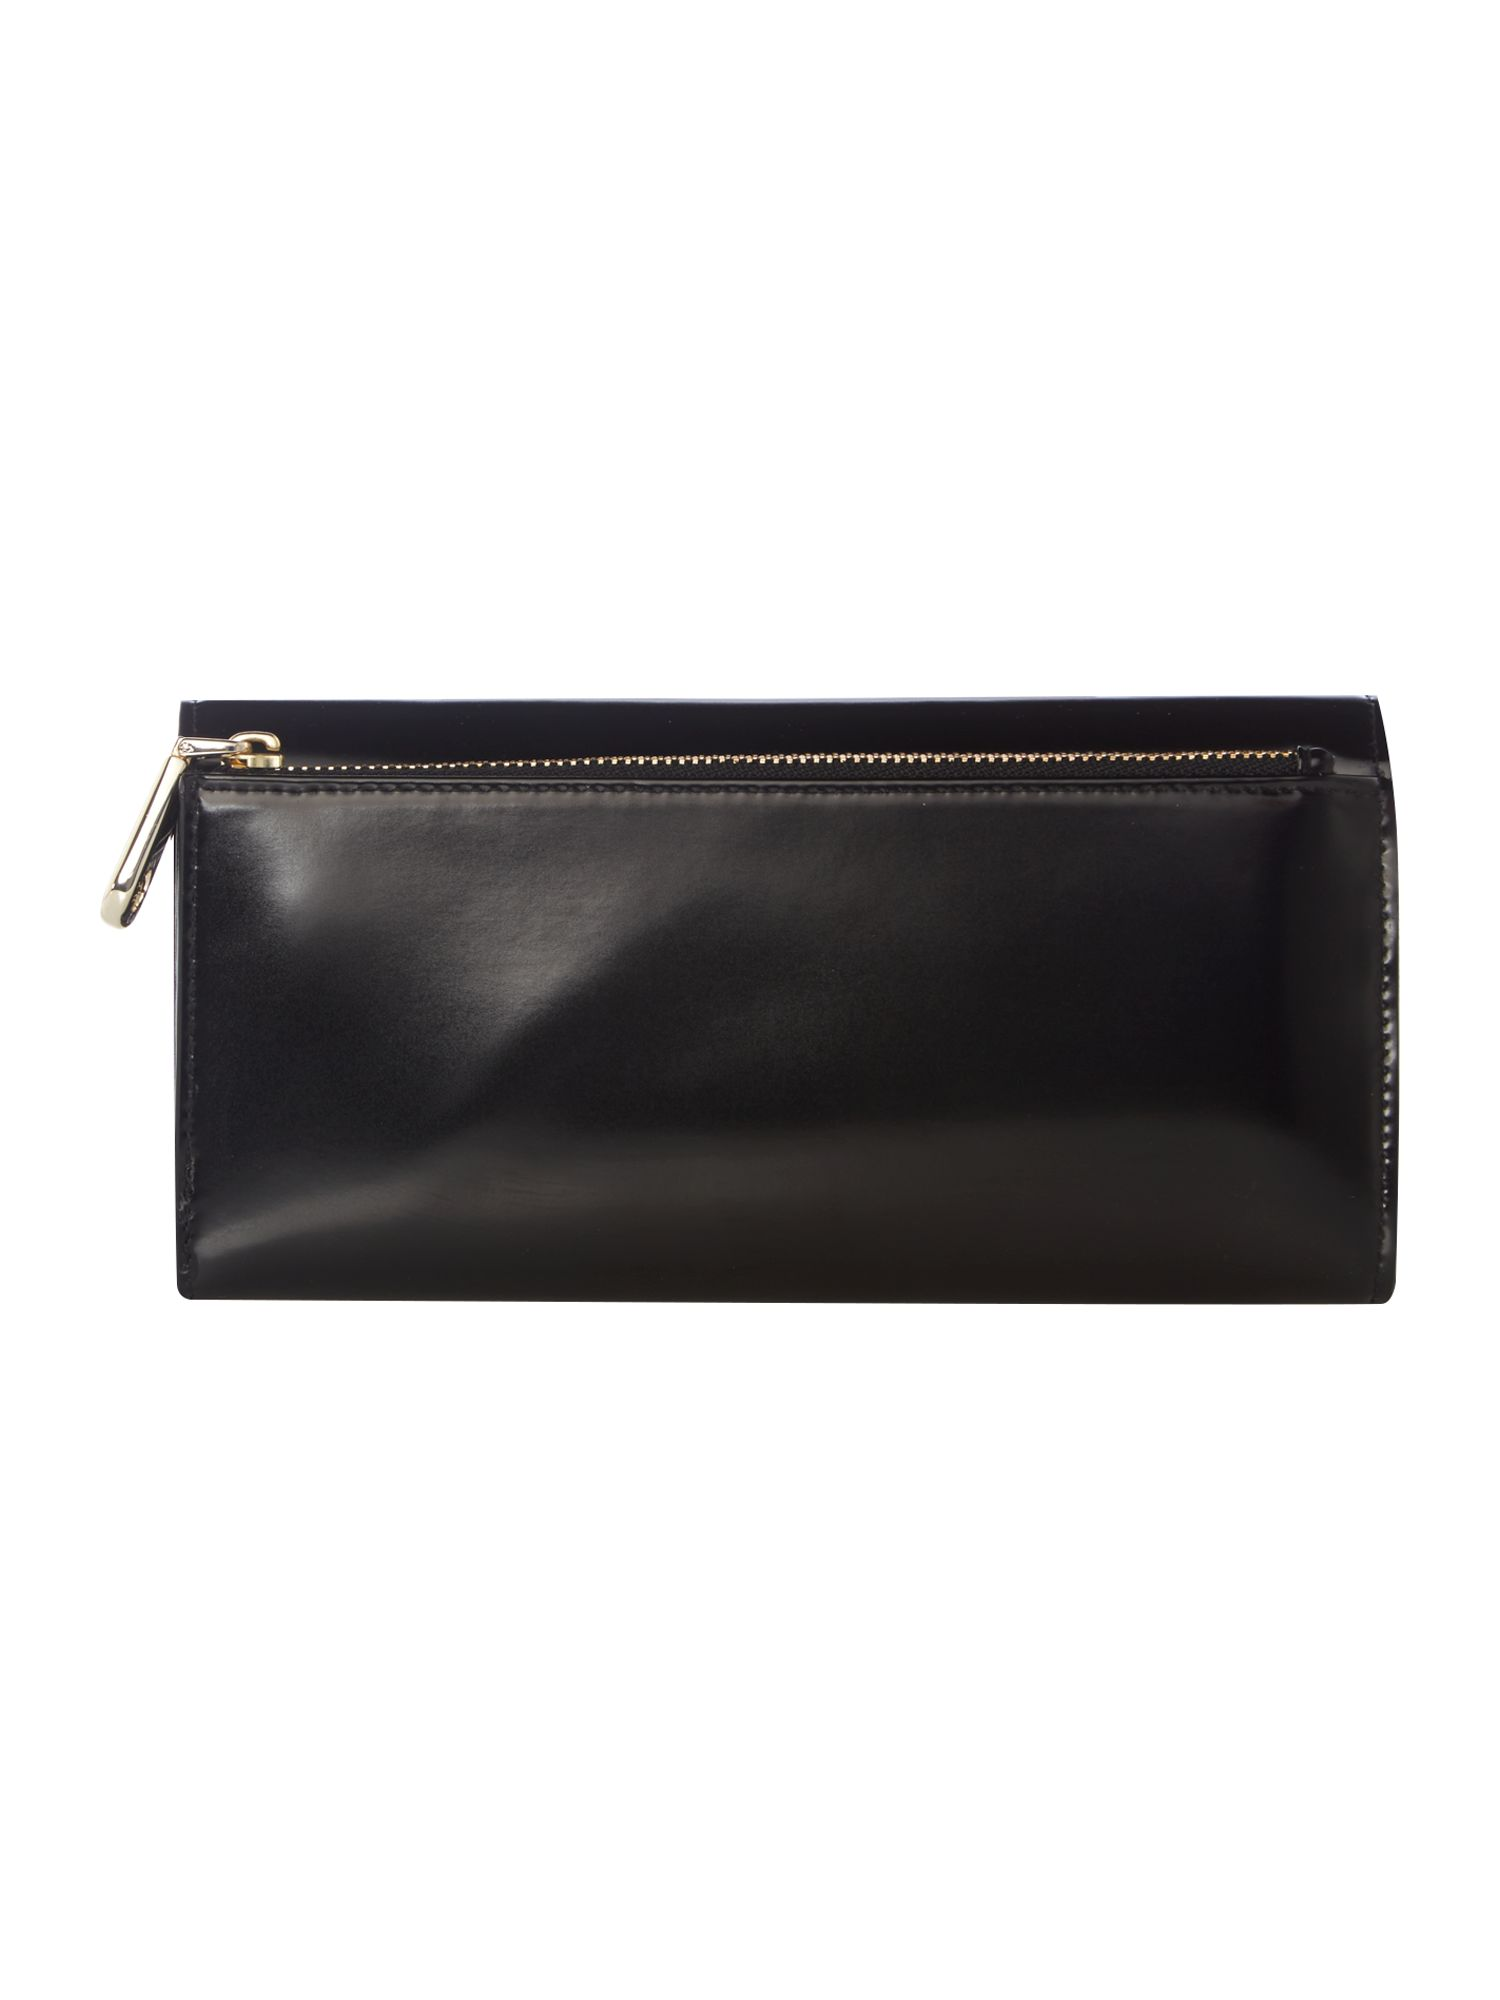 Hudson black large flap over purse